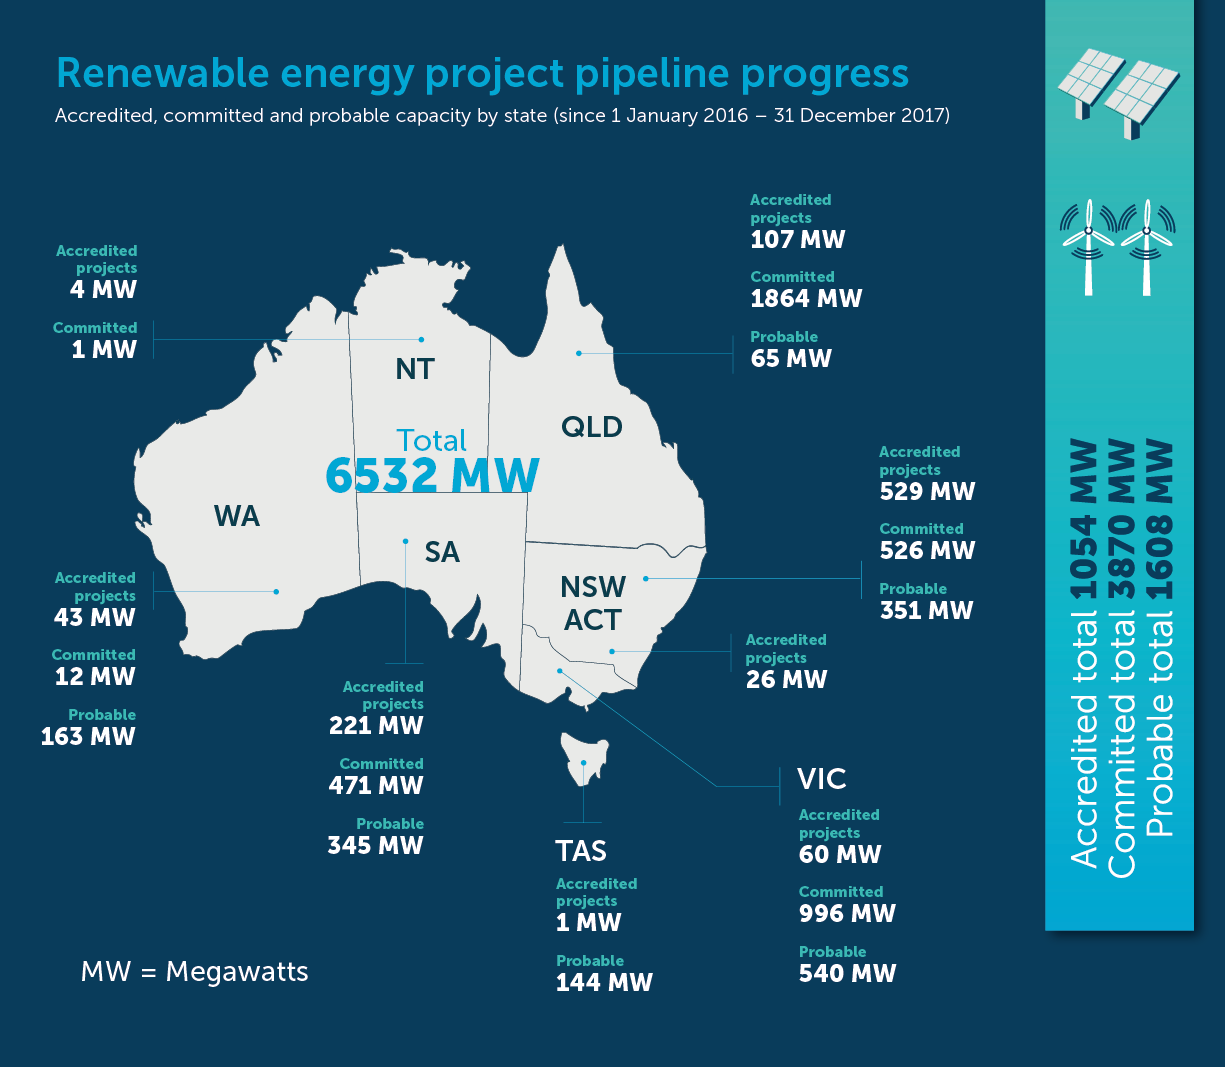 After a record year for Australian renewables, the Clean Energy Council expects 2018 and 2019 to be even bigger. Credit: CER